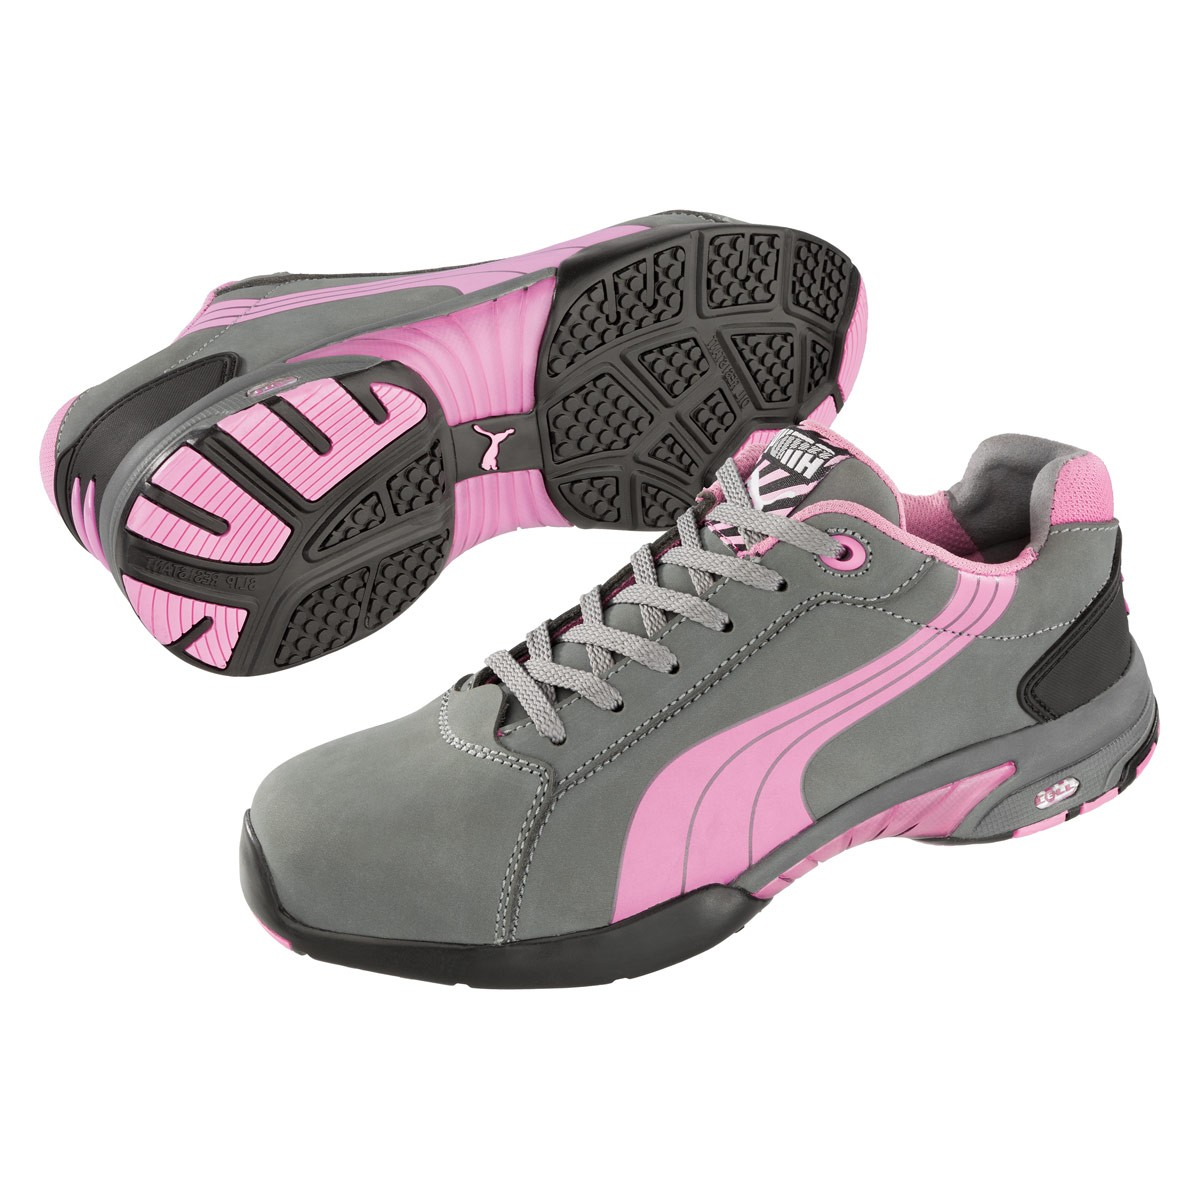 steel toe shoes for women puma safety womenu0027s balance shoe - 642865 fmnsshg